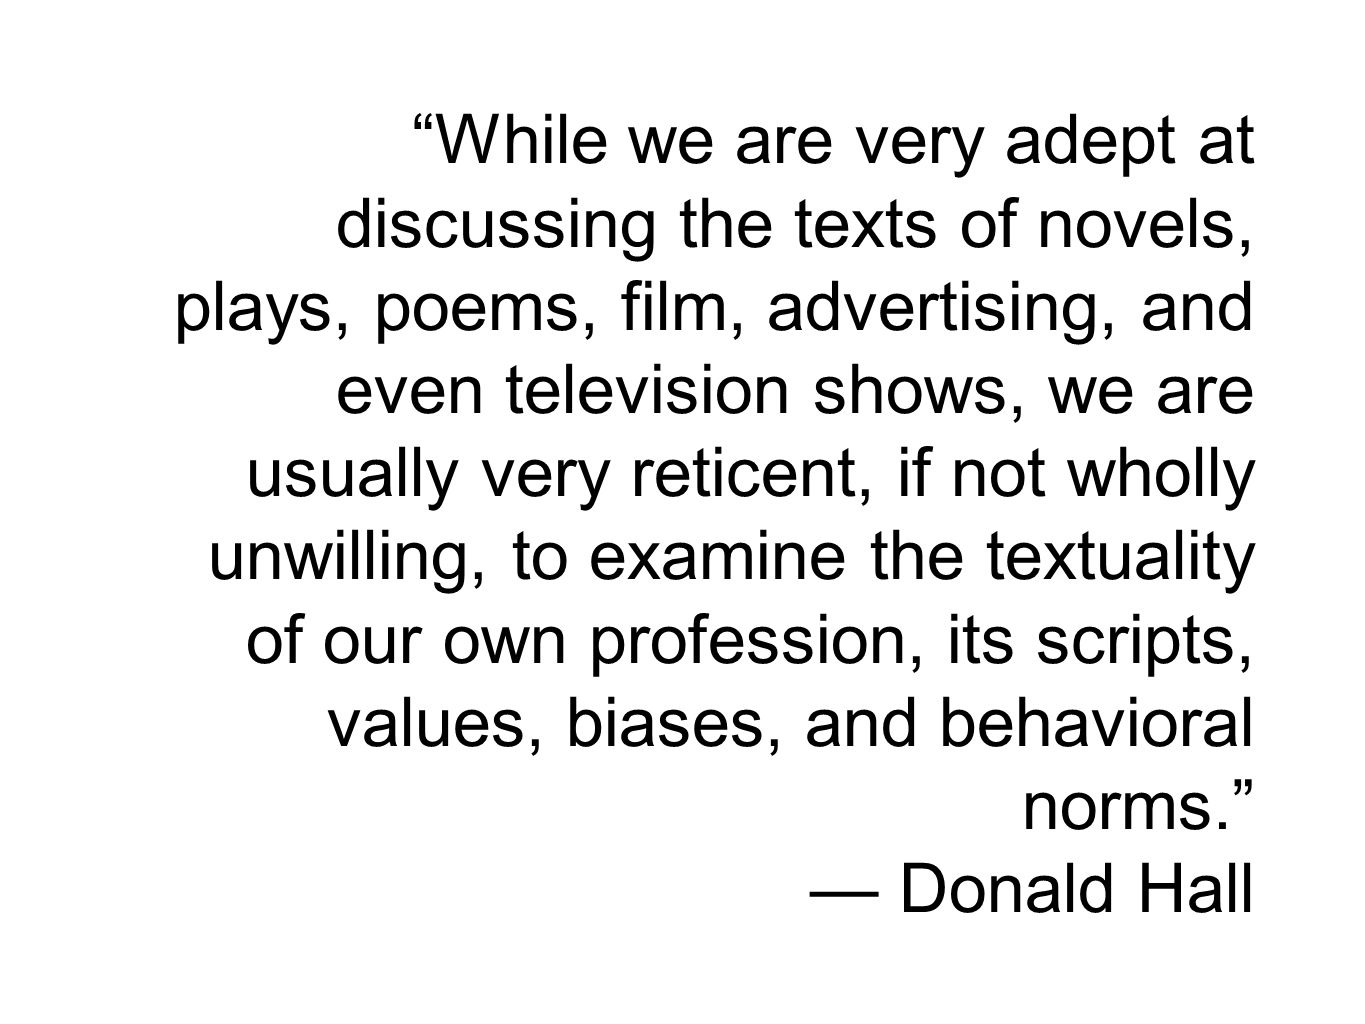 While we are very adept at discussing the texts of novels, plays, poems, film, advertising, and even television shows, we are usually very reticent, if not wholly unwilling, to examine the textuality of our own profession, its scripts, values, biases, and behavioral norms. — Donald Hall